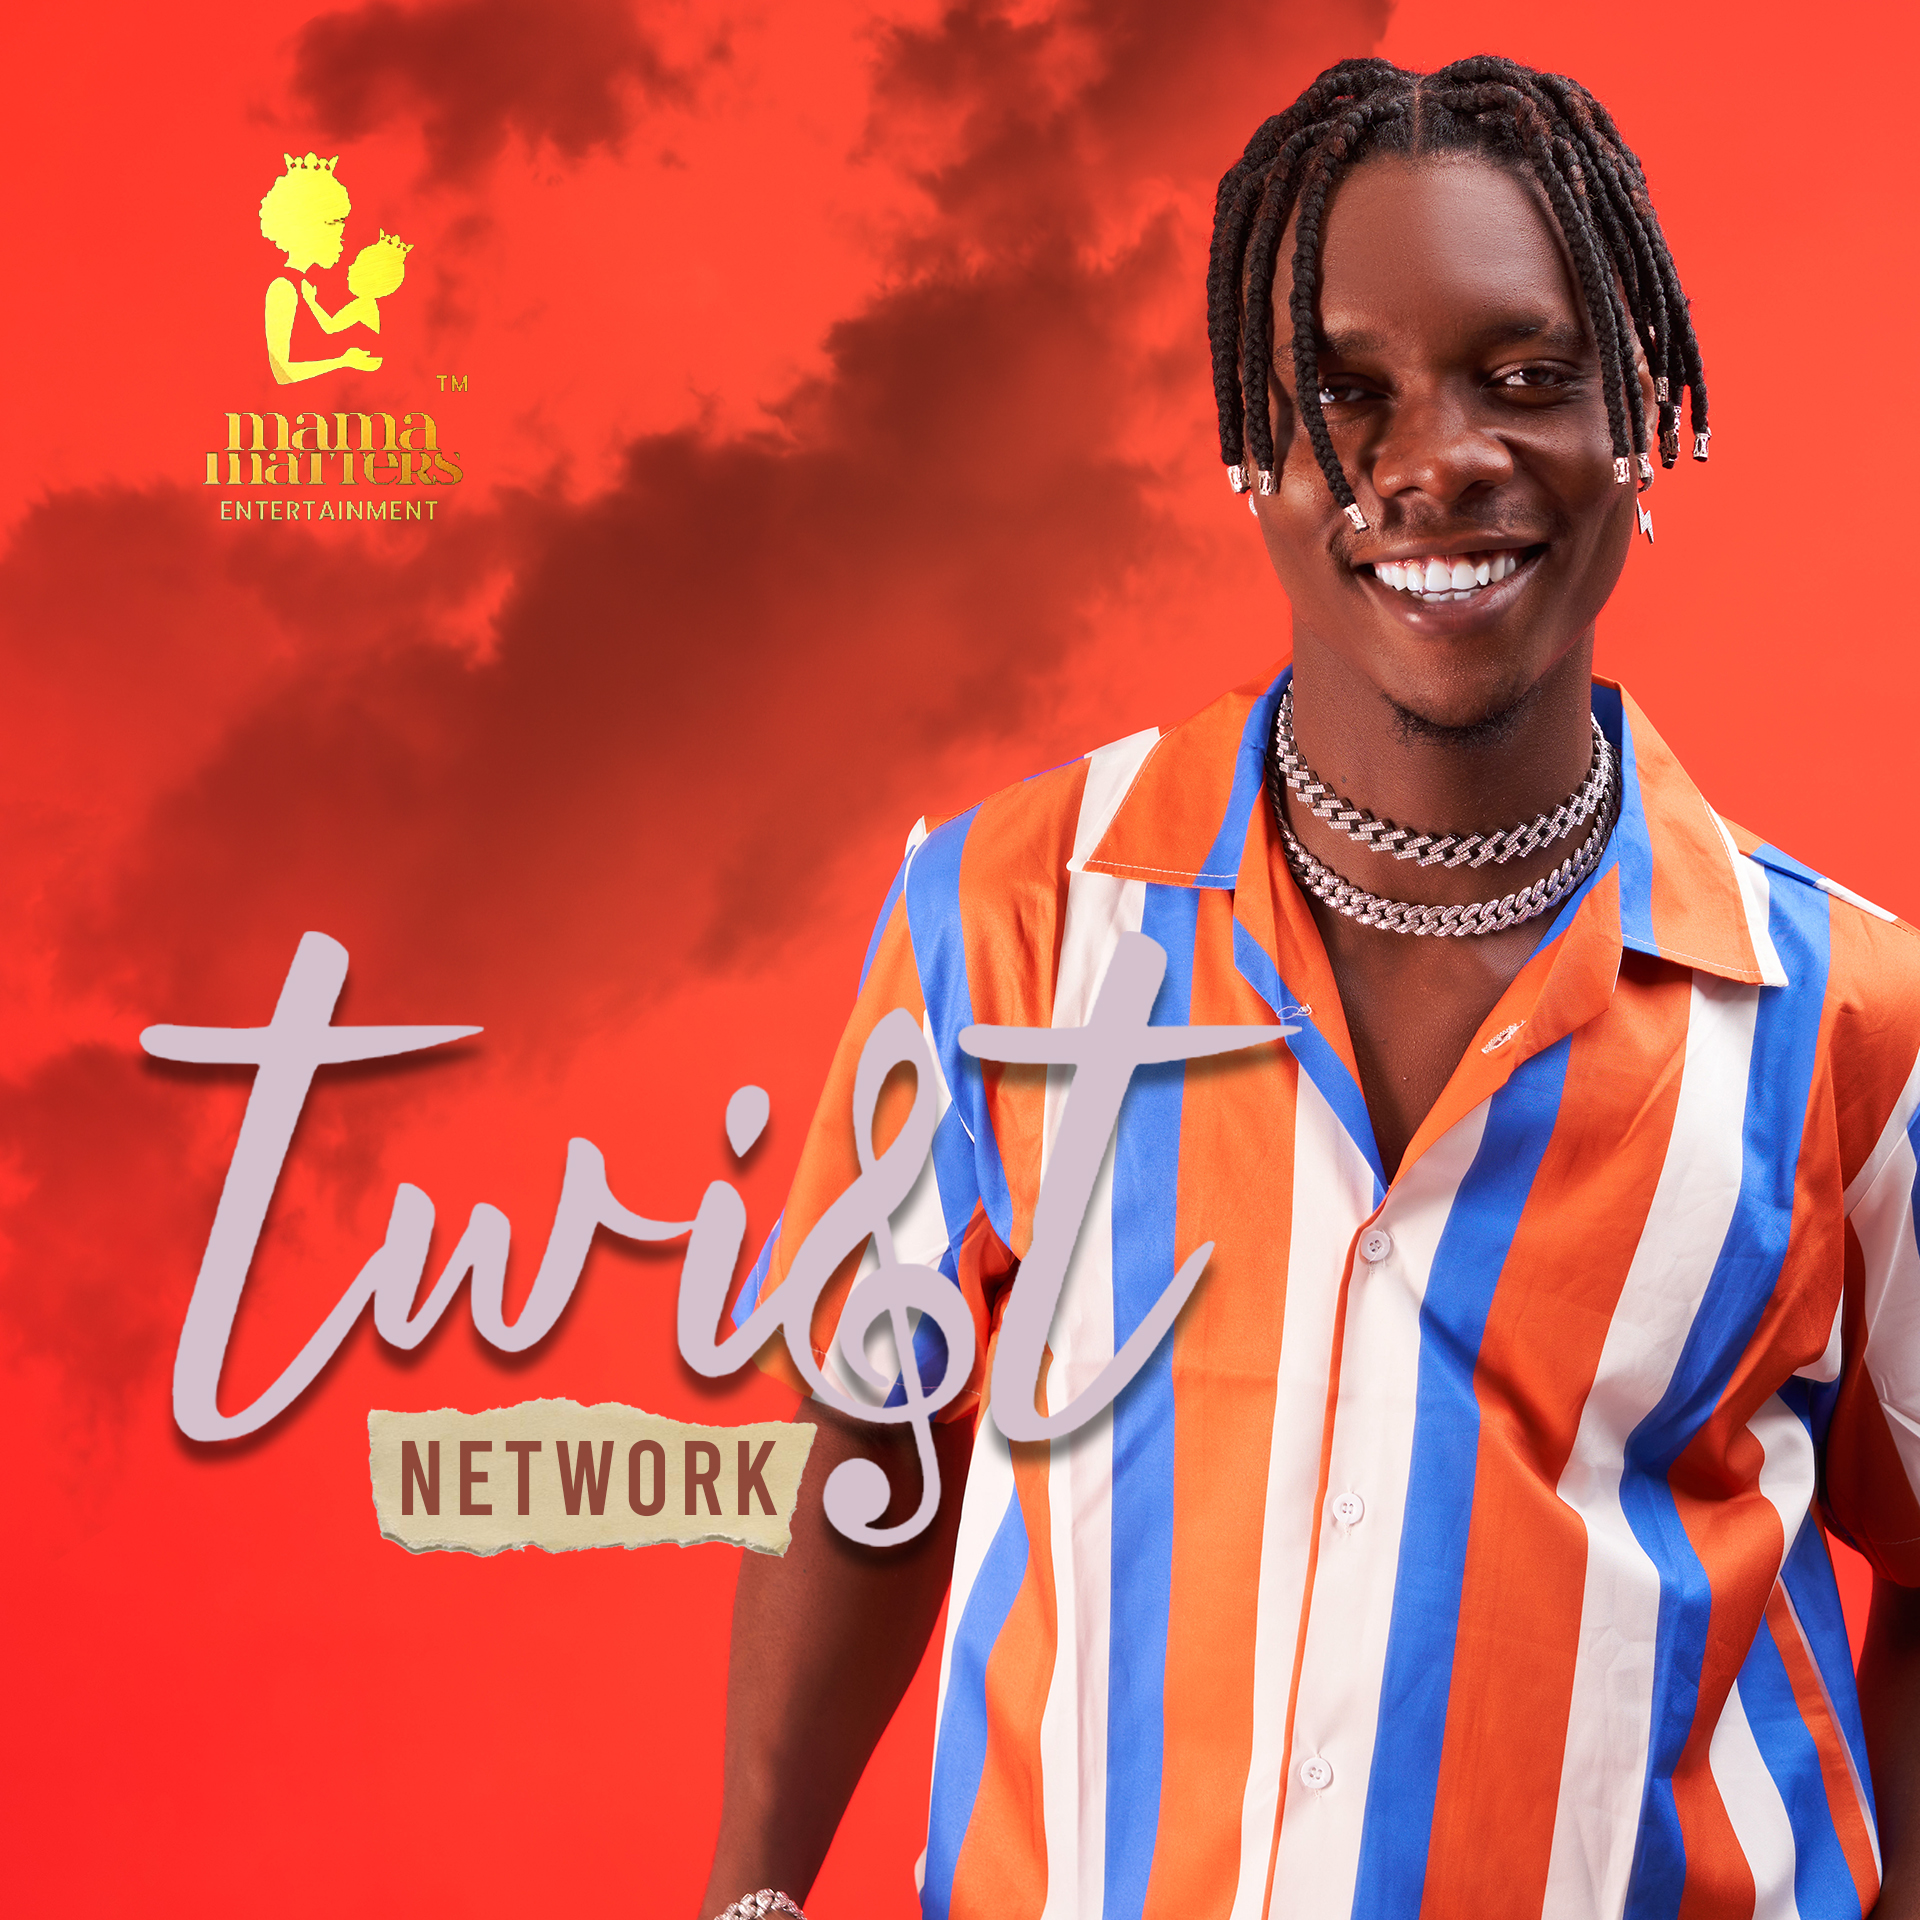 Twist releases single titled 'Network'